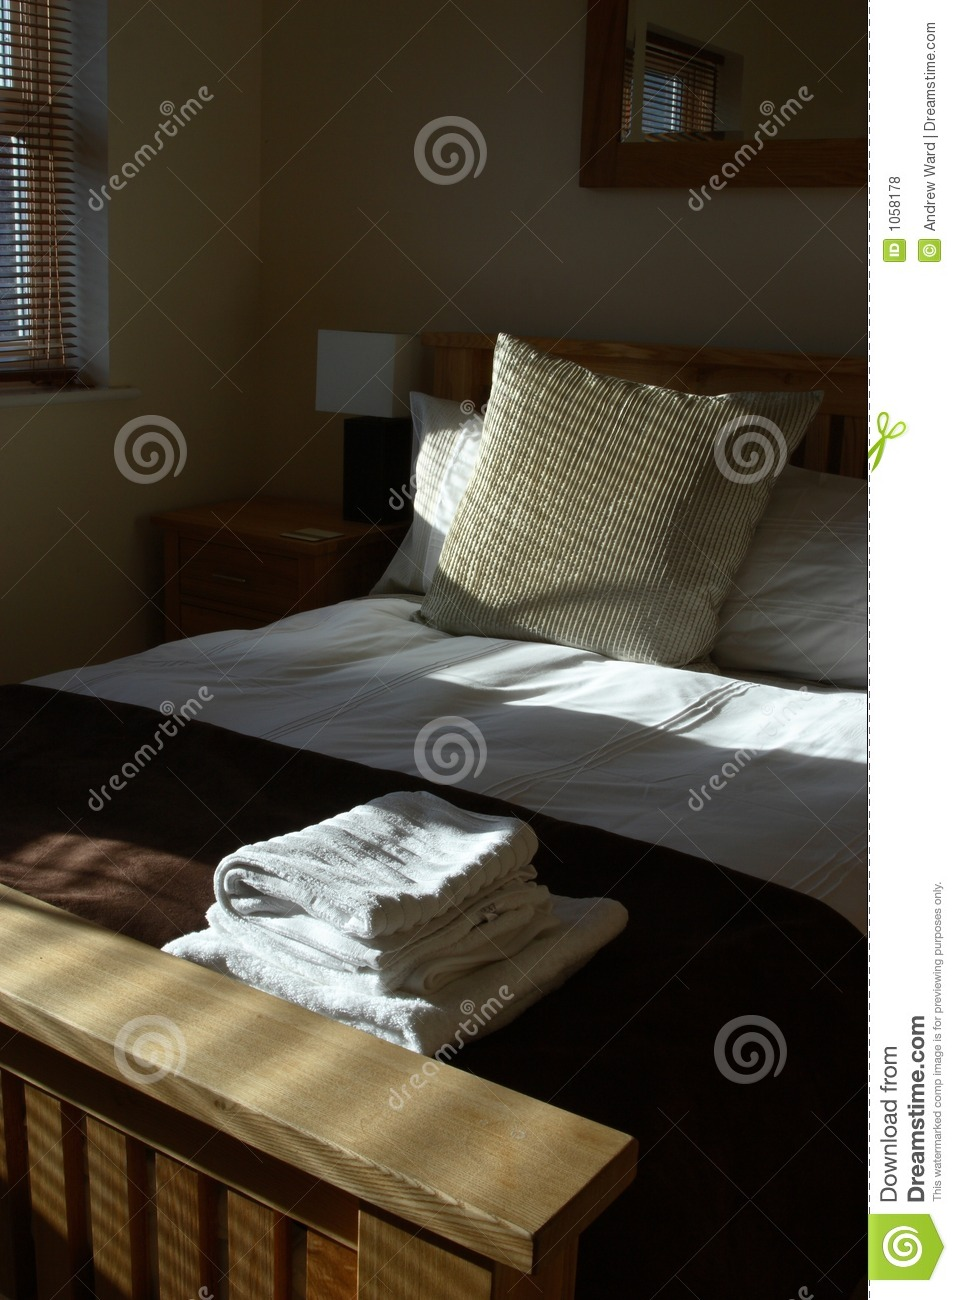 Freshly Made Bed In A Smart Hotel Room Stock Photo